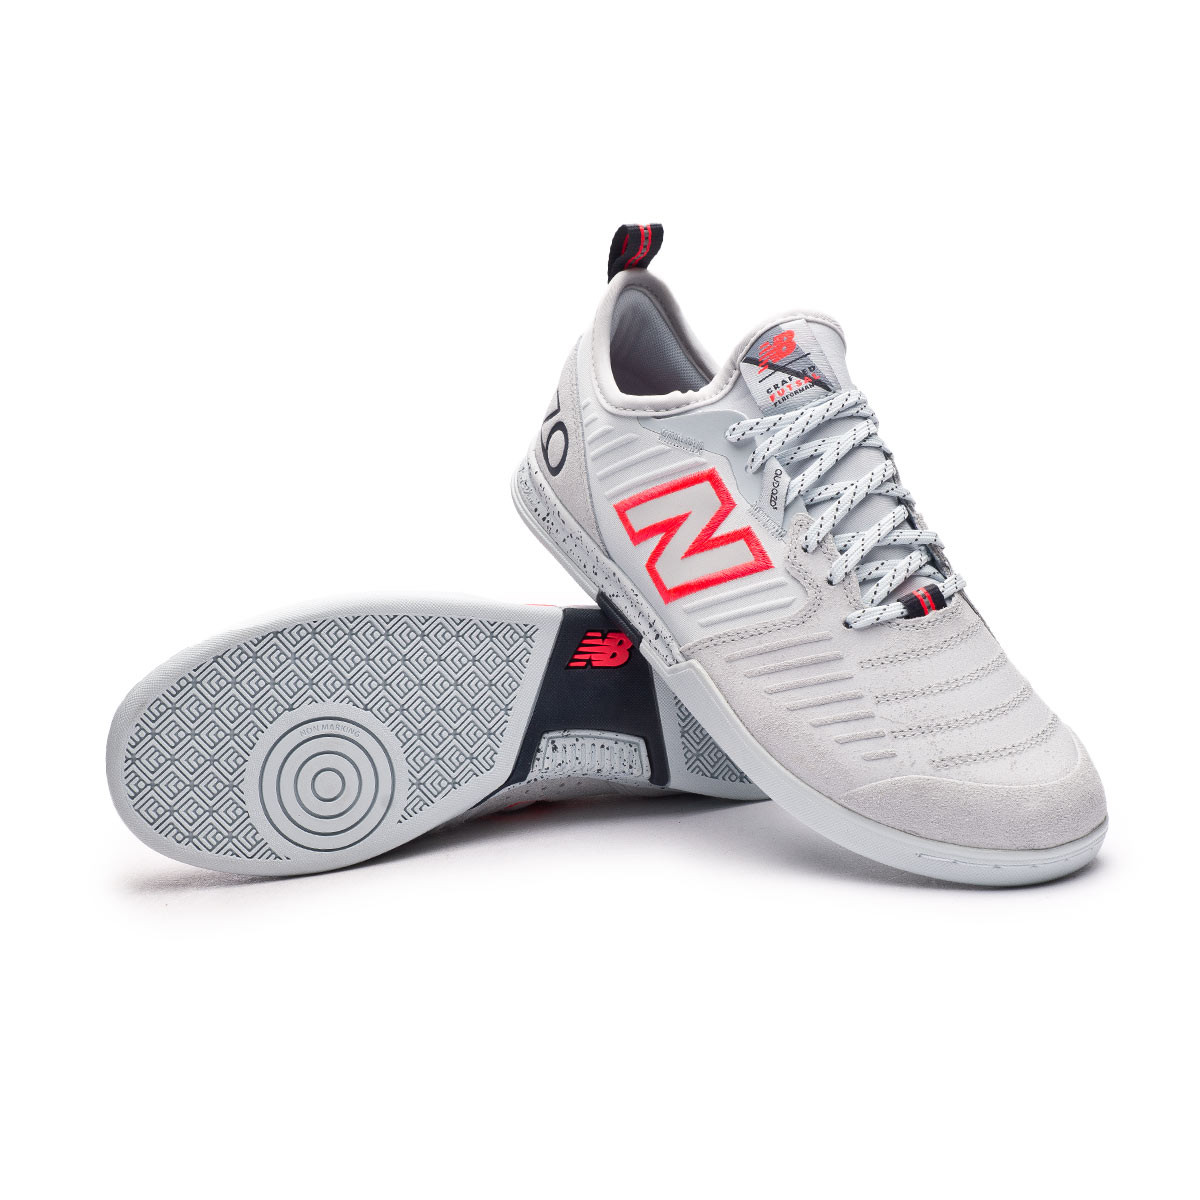 New Balance Audazo V5 Pro Suede IN Futsal Boot